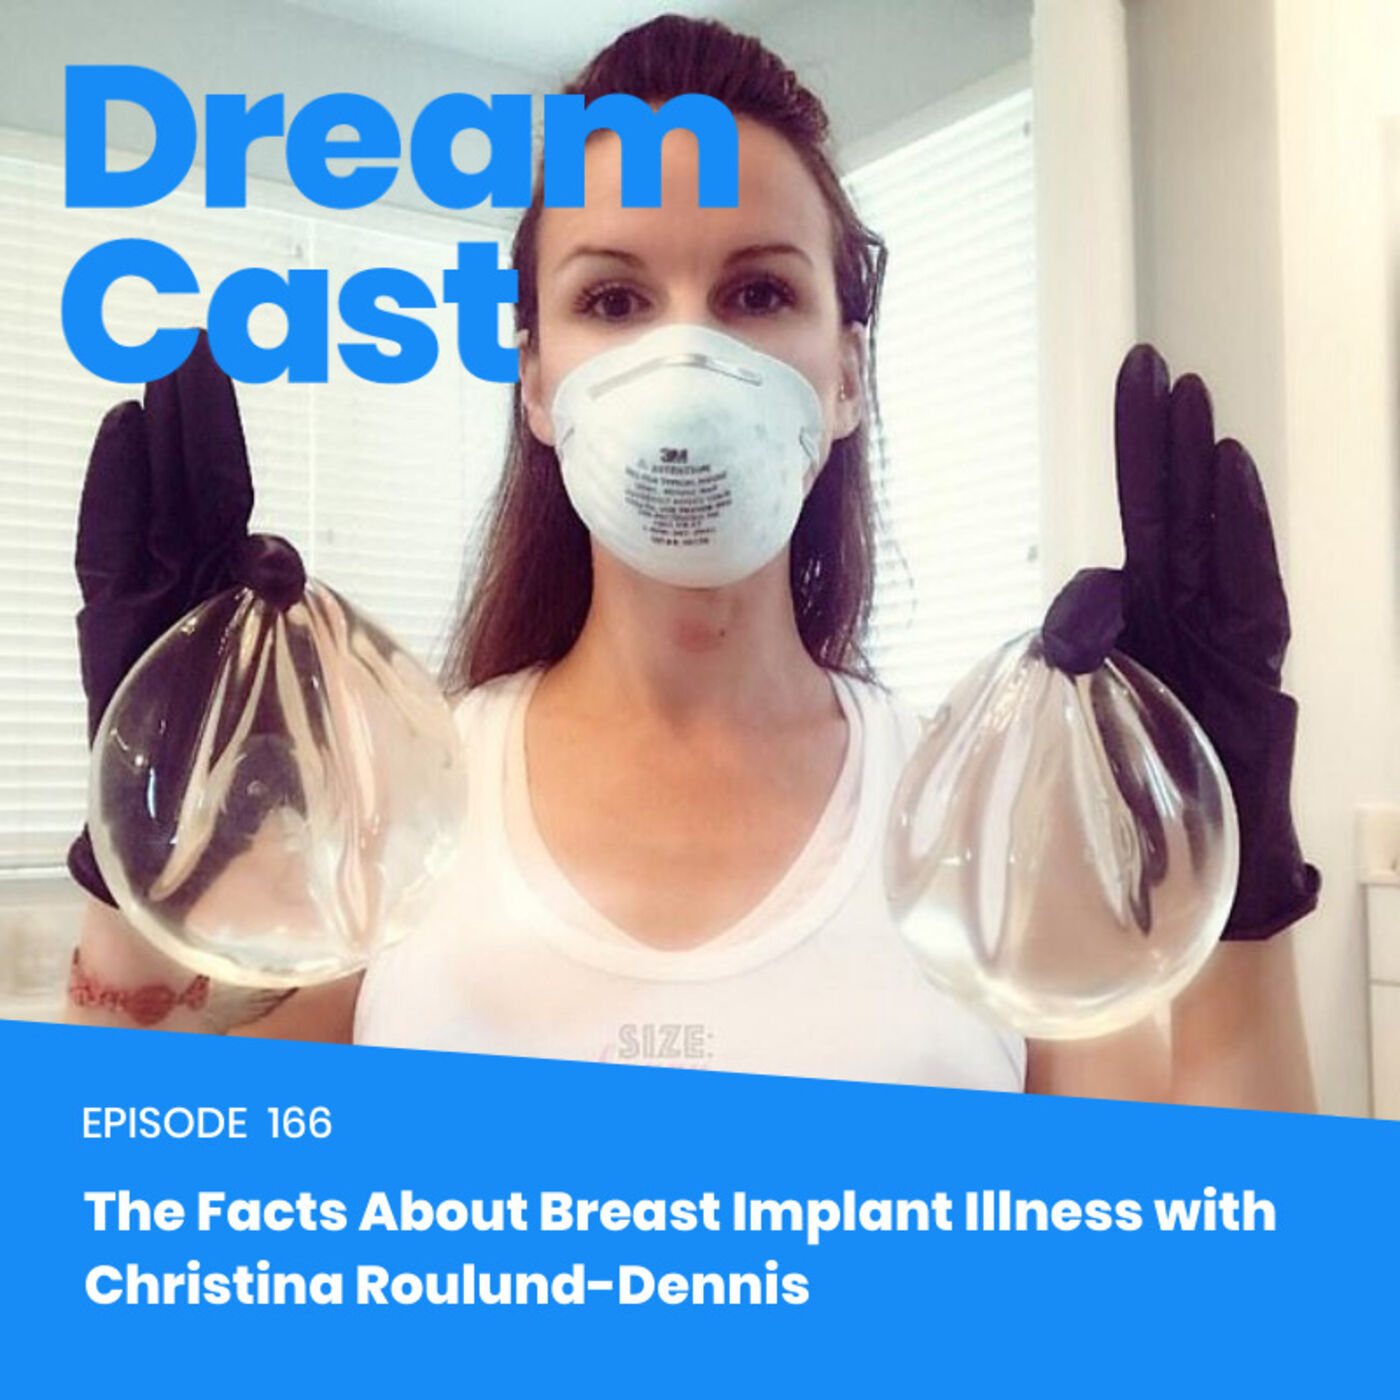 Episode 168 – The Facts About Breast Implant Illness with Christina Roulund-Dennis